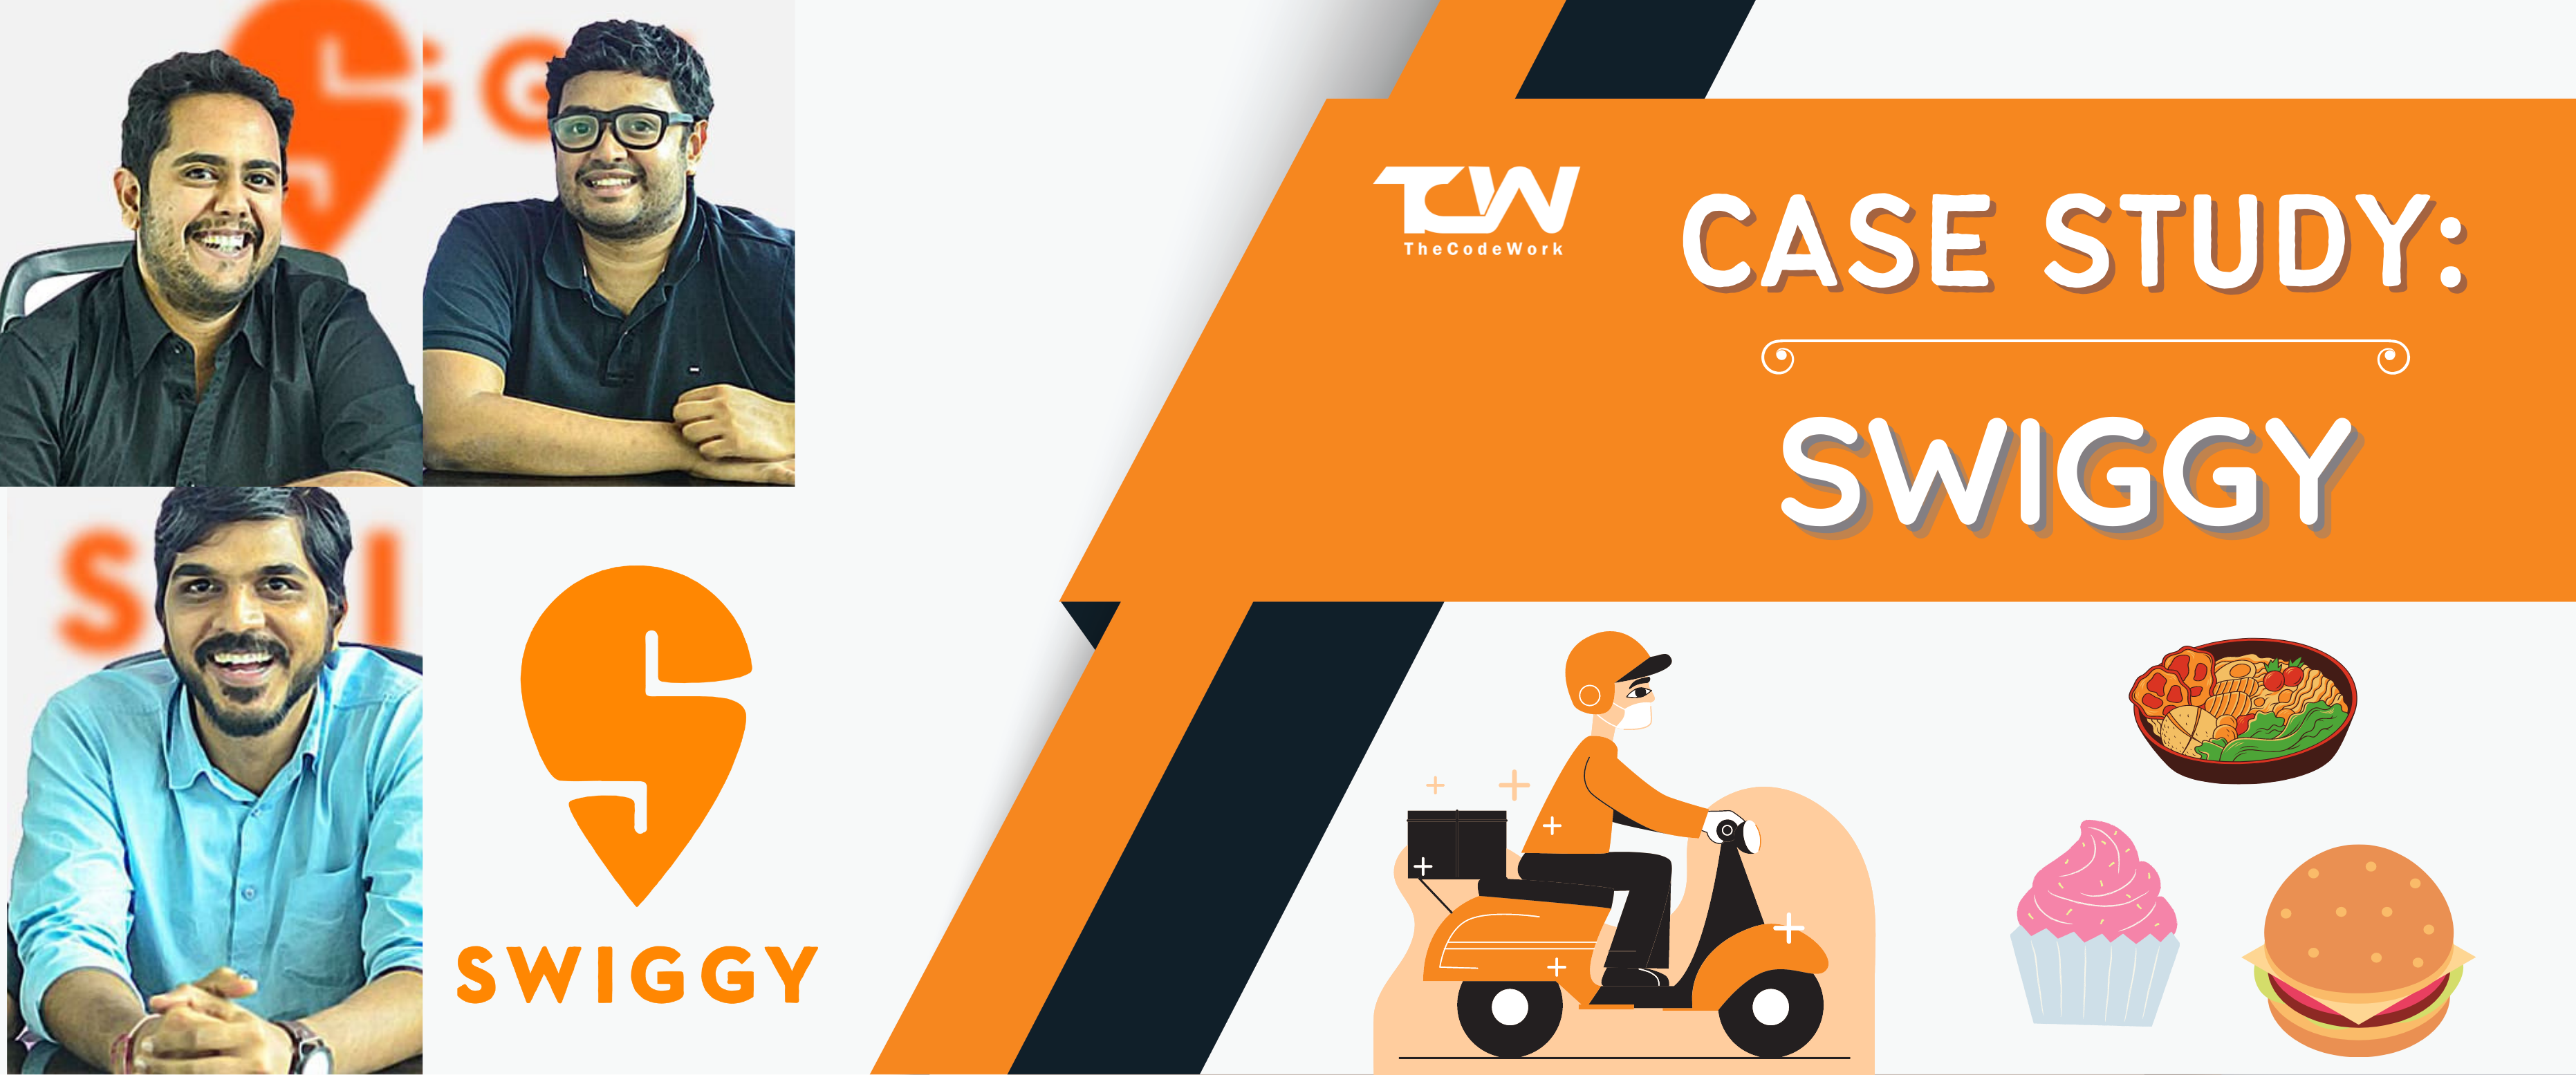 A case study on the food delivery platform – Swiggy